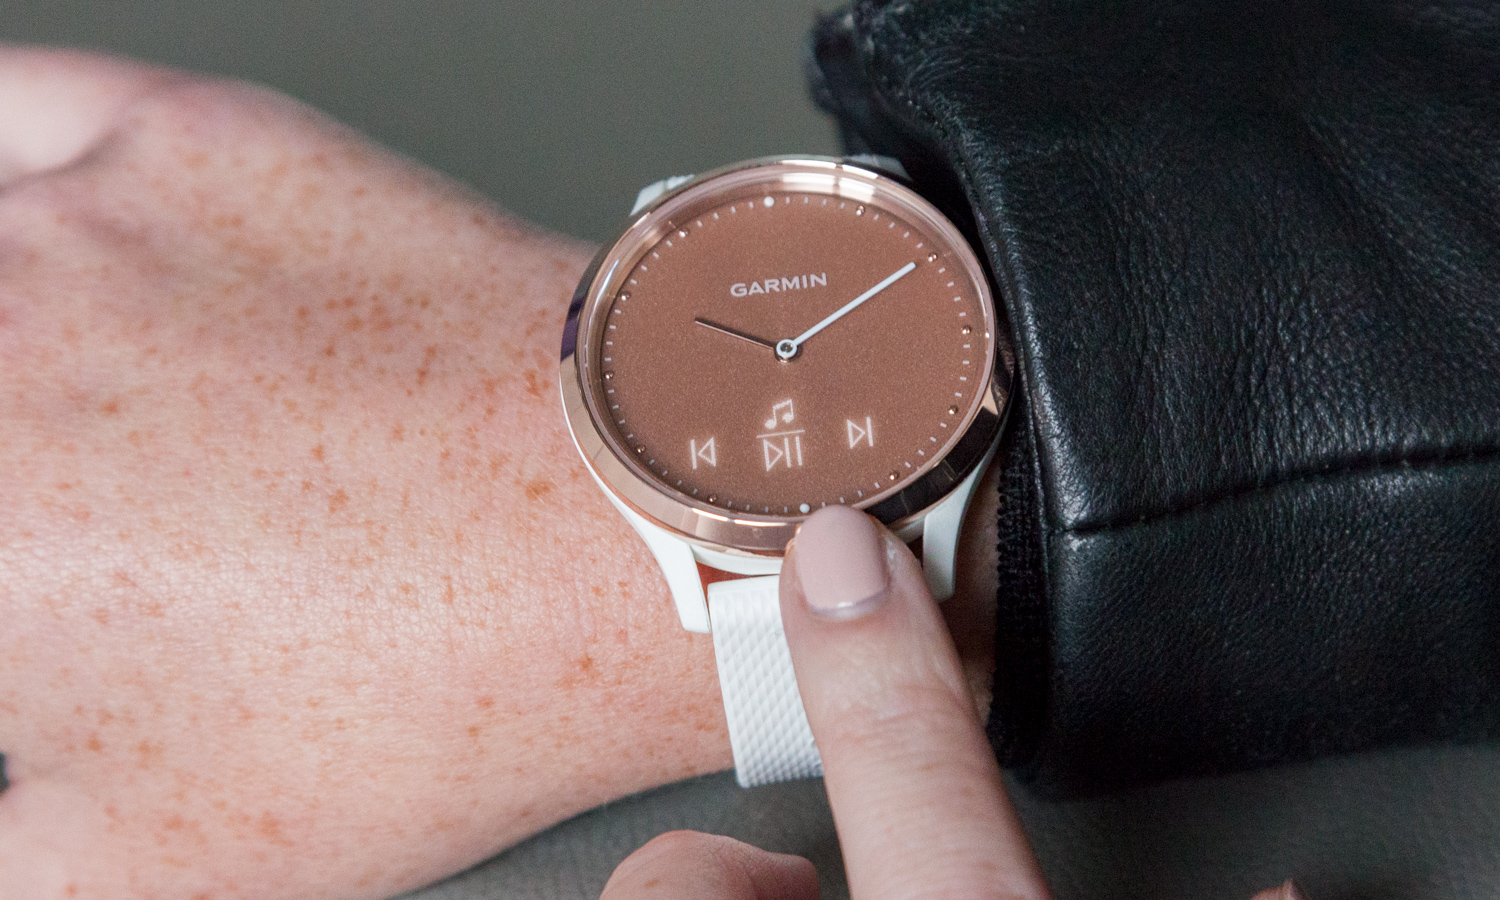 Garmin Vivomove HR Review: Stylish Smartwatch Falters on Fitness